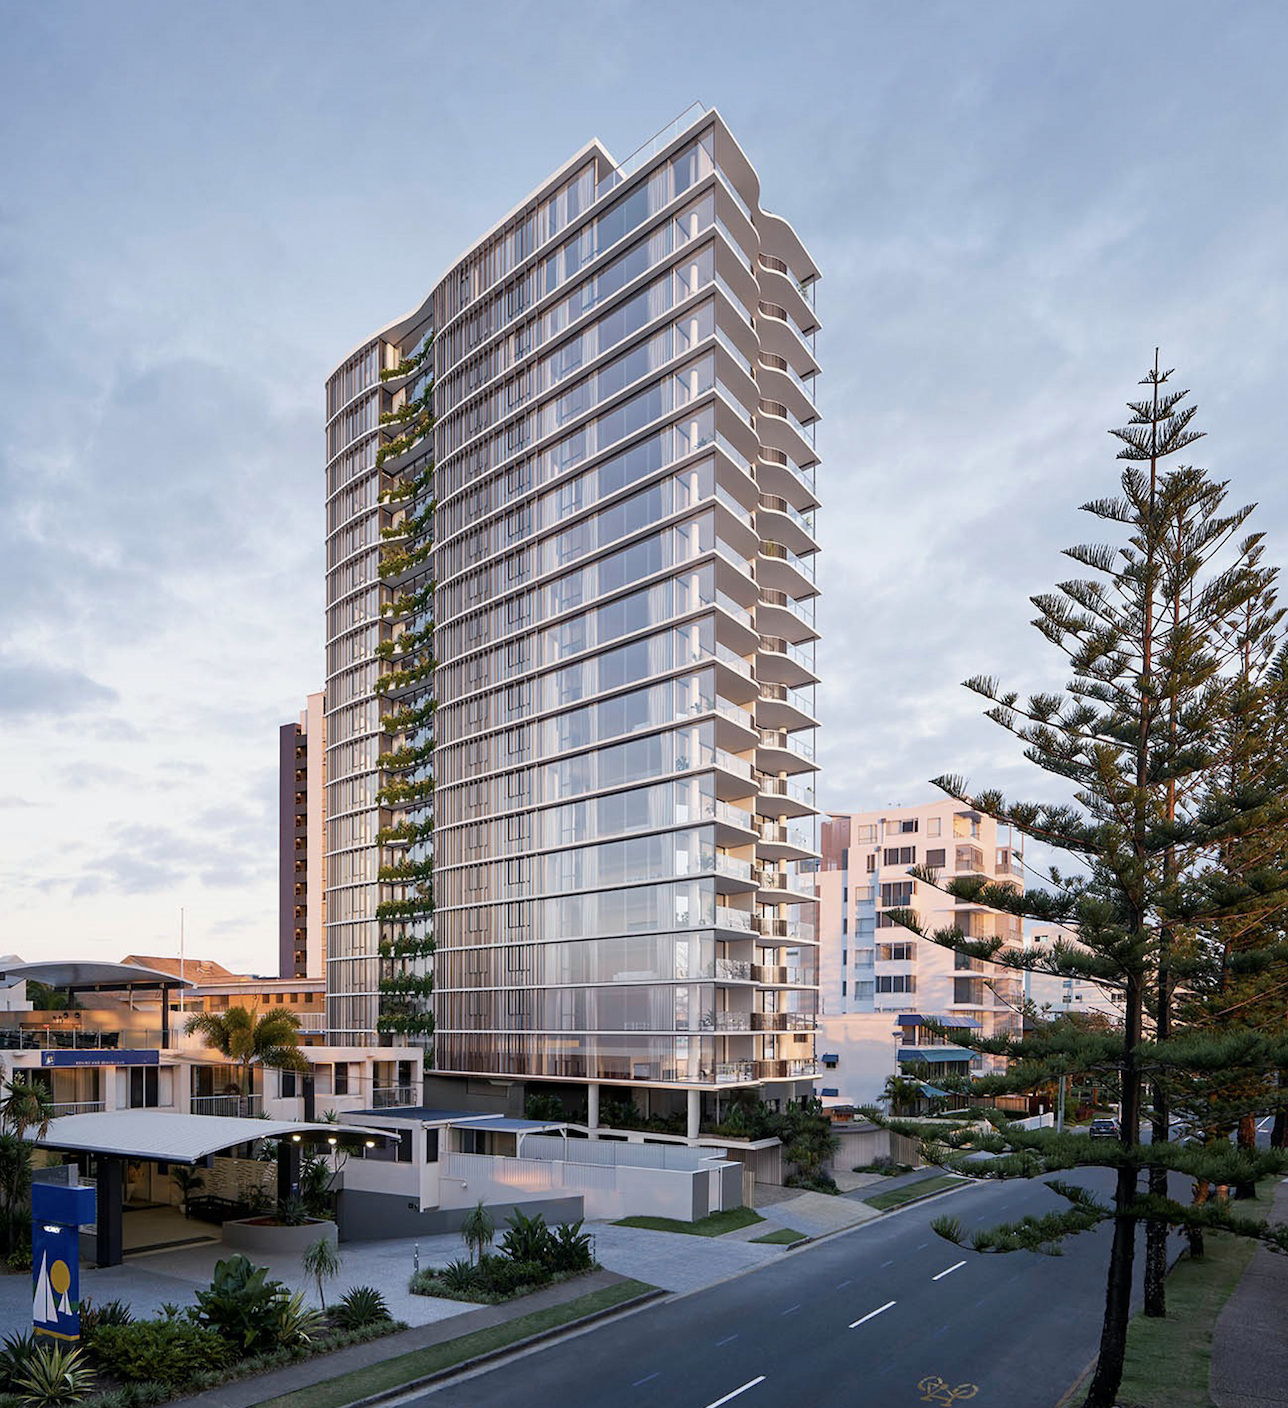 Gold Coast development. Devine Development Group and Cru Collective are the latest developers advancing luxury apartment towers amid buyer frenzy on the Gold Coast.